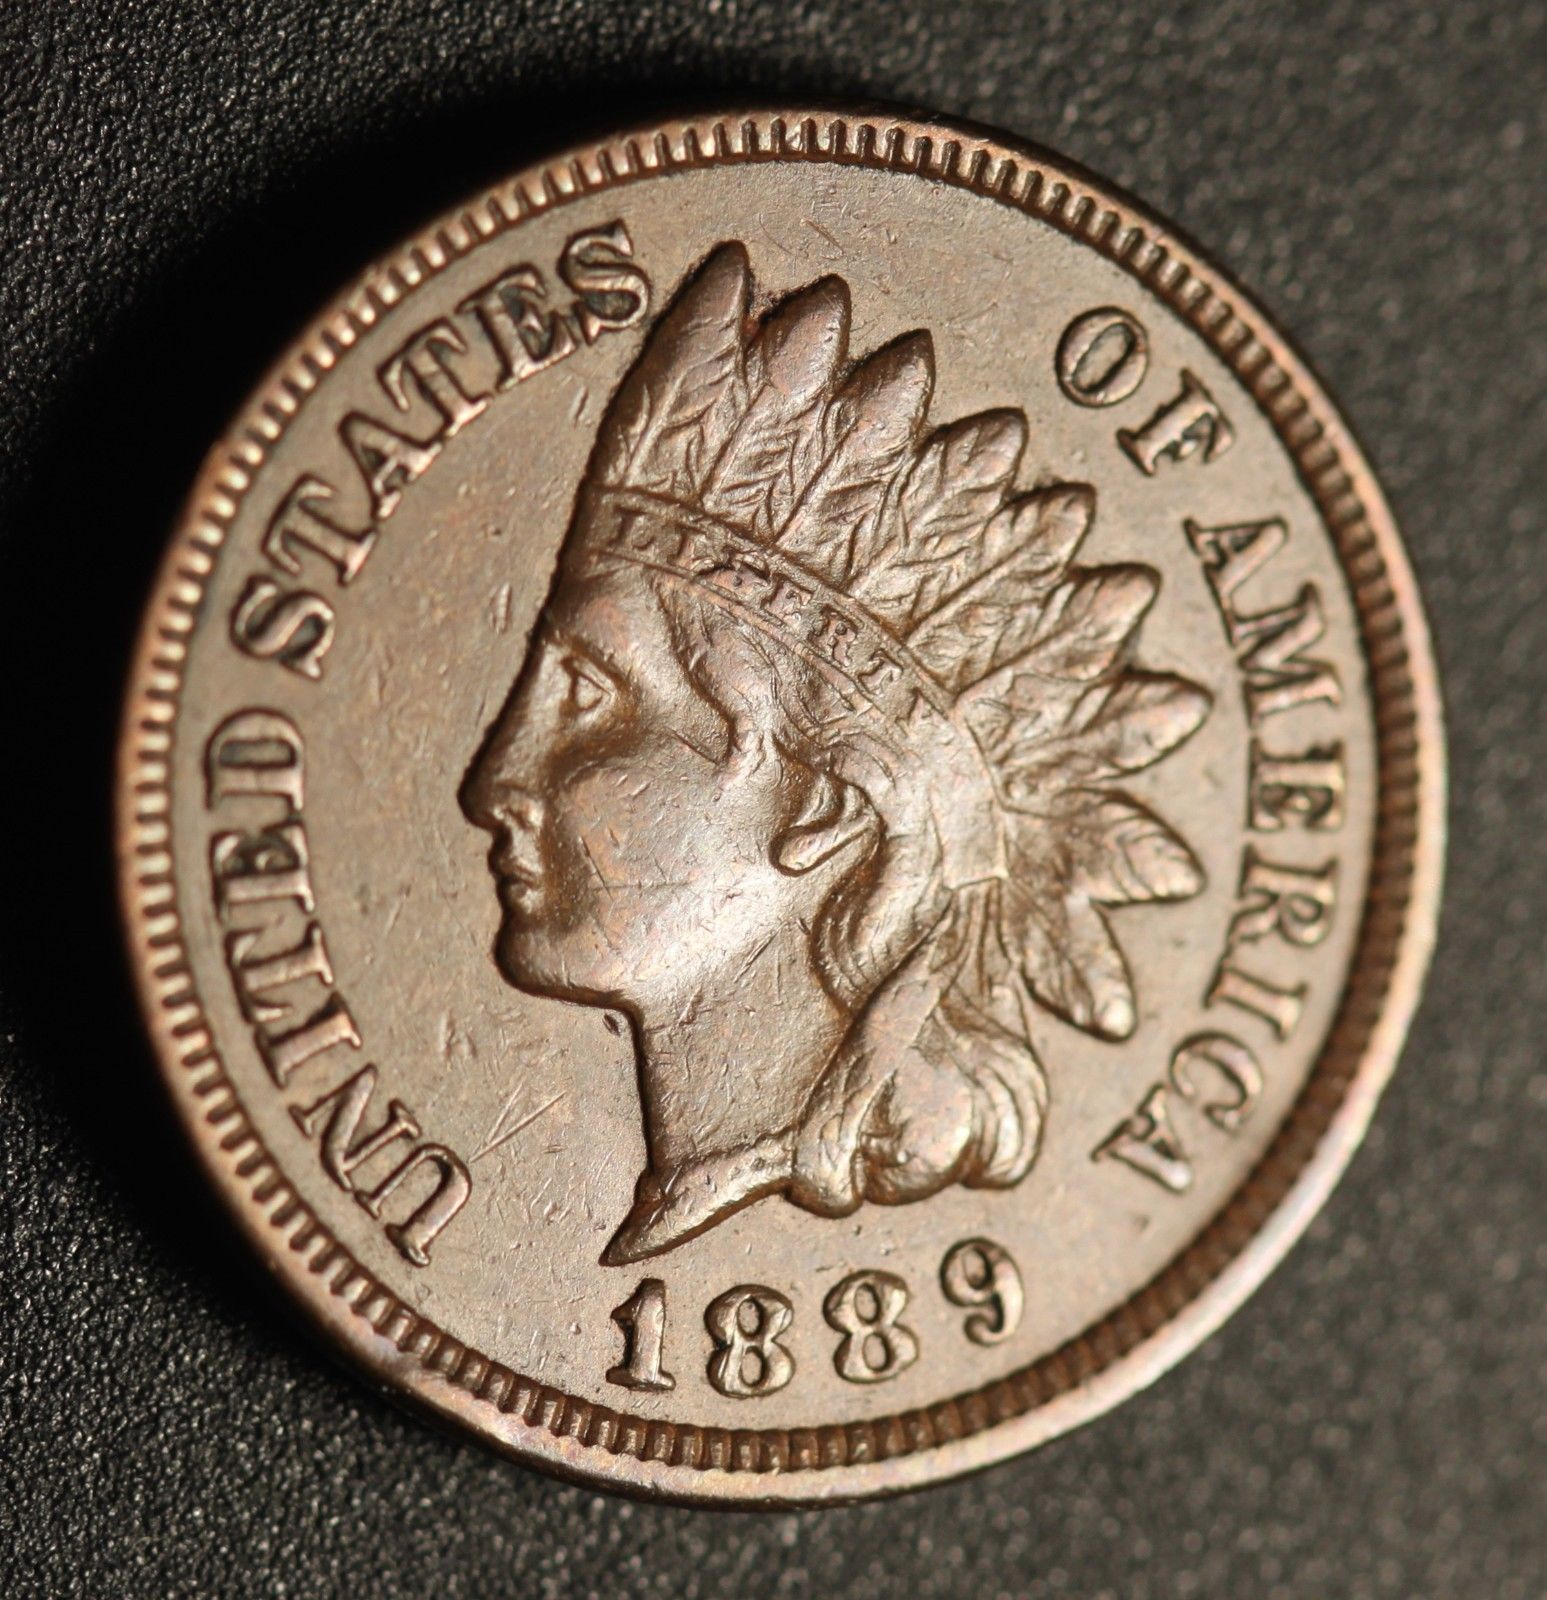 1889 RPD-002 - Indian Head Penny - Photo Courtesy of Ed Nathanson